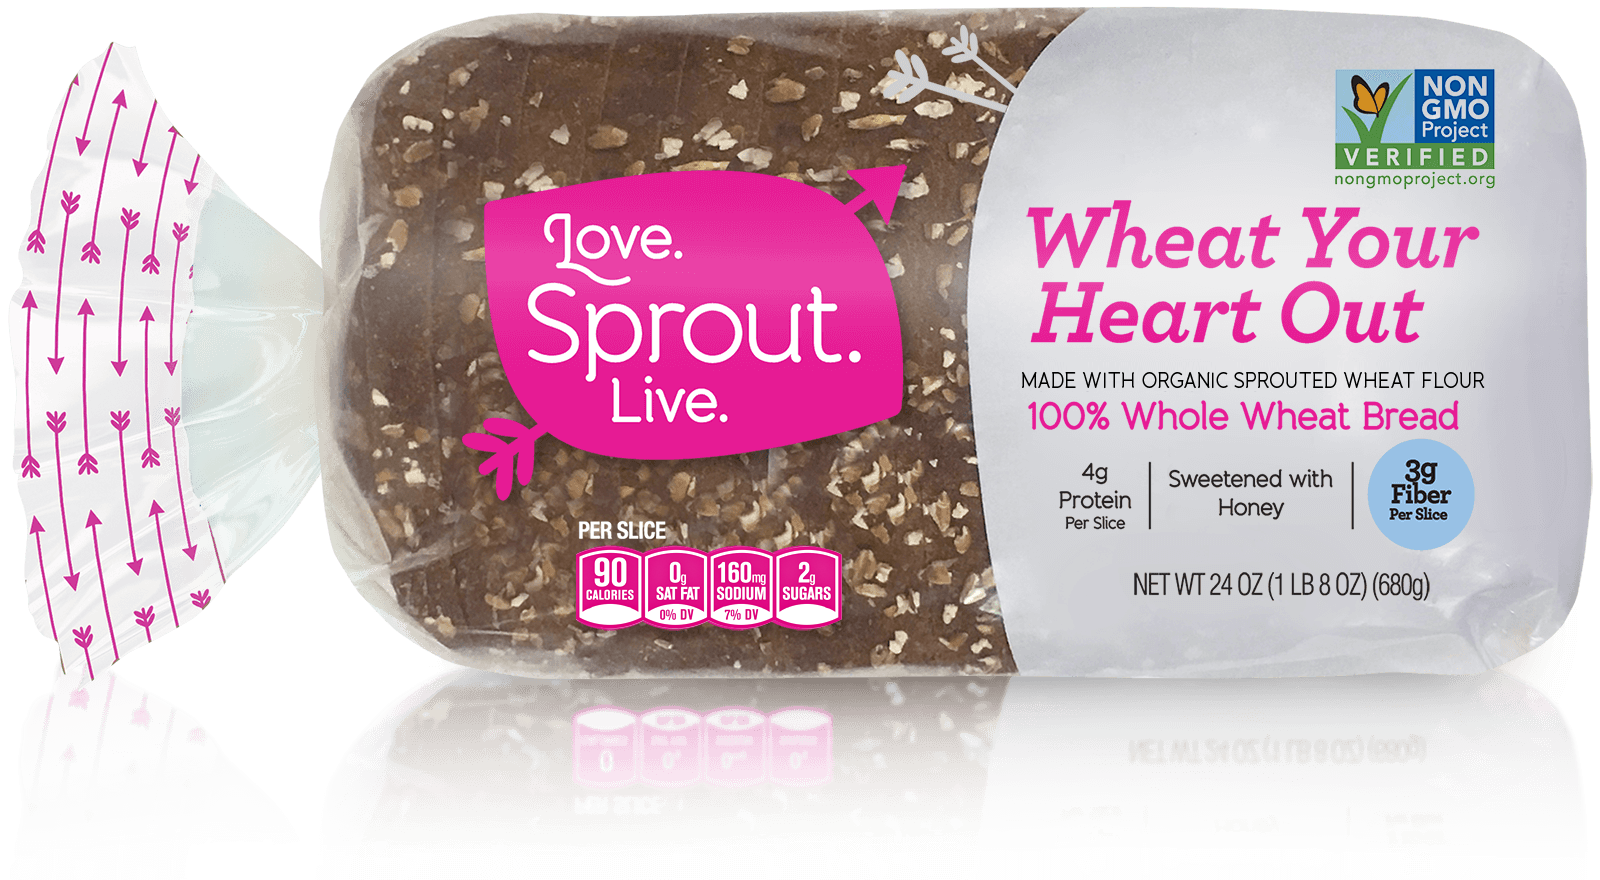 Wheat Your Heart Out - Wheat that makes you whole!